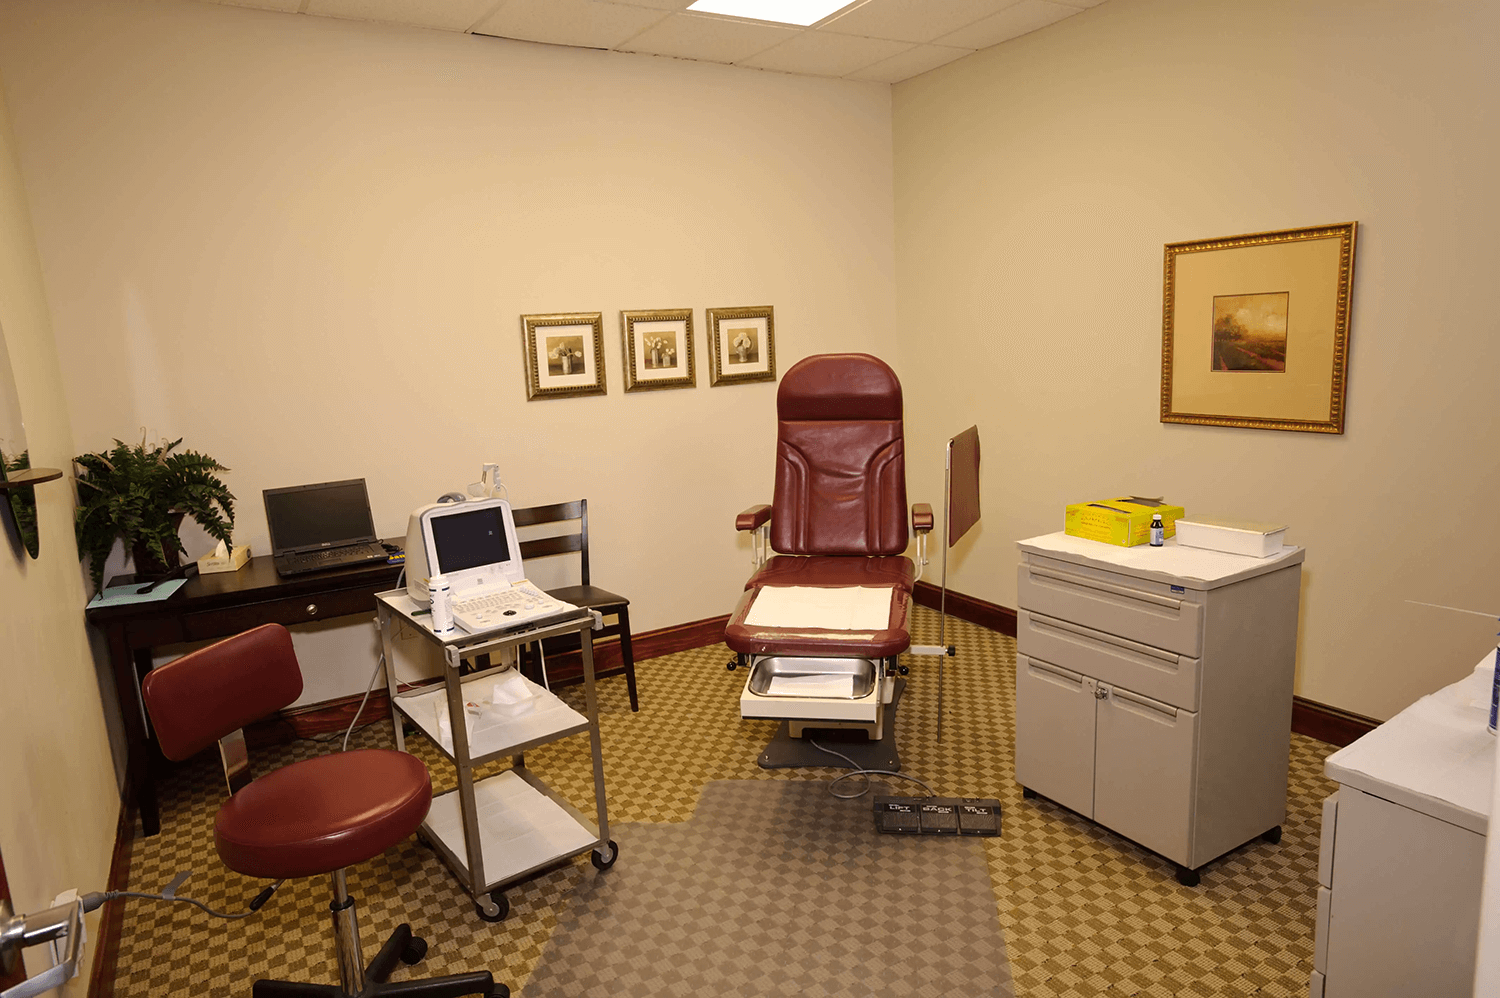 Image of exam room at Livingston Podiatry Associates